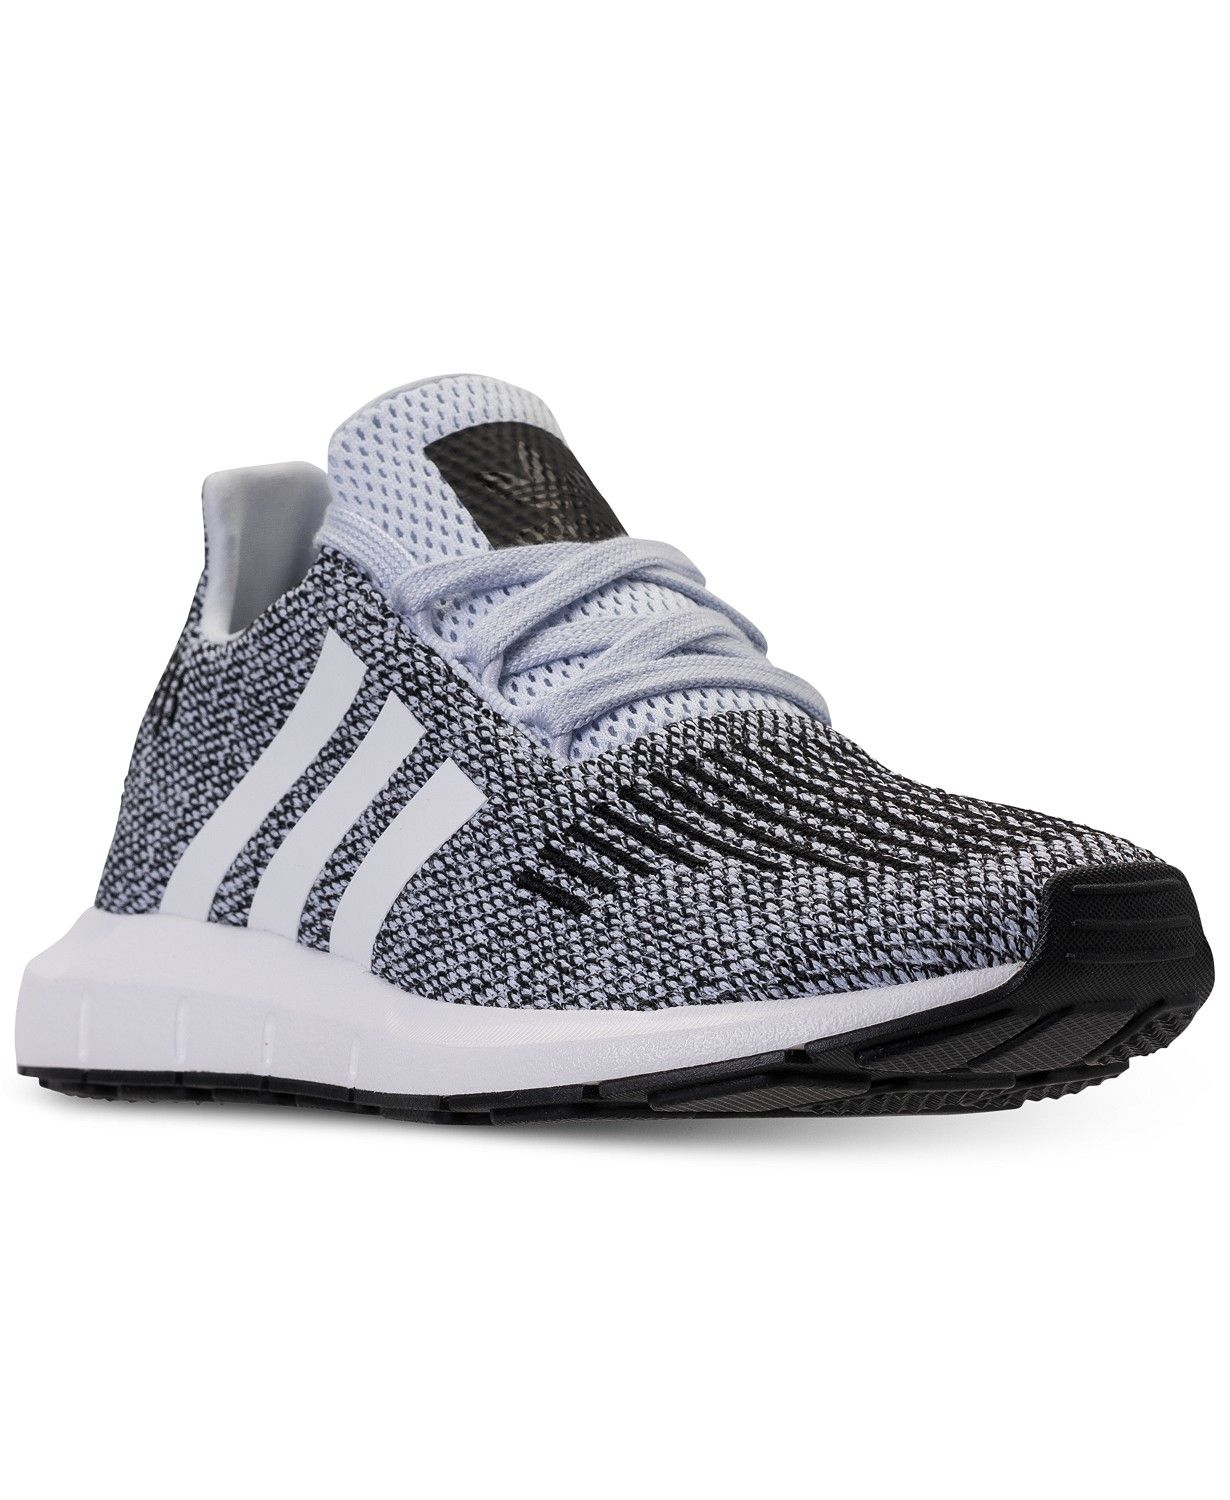 adidas Big Boys  Swift Run Running Sneakers from Finish Line  8a3844e60